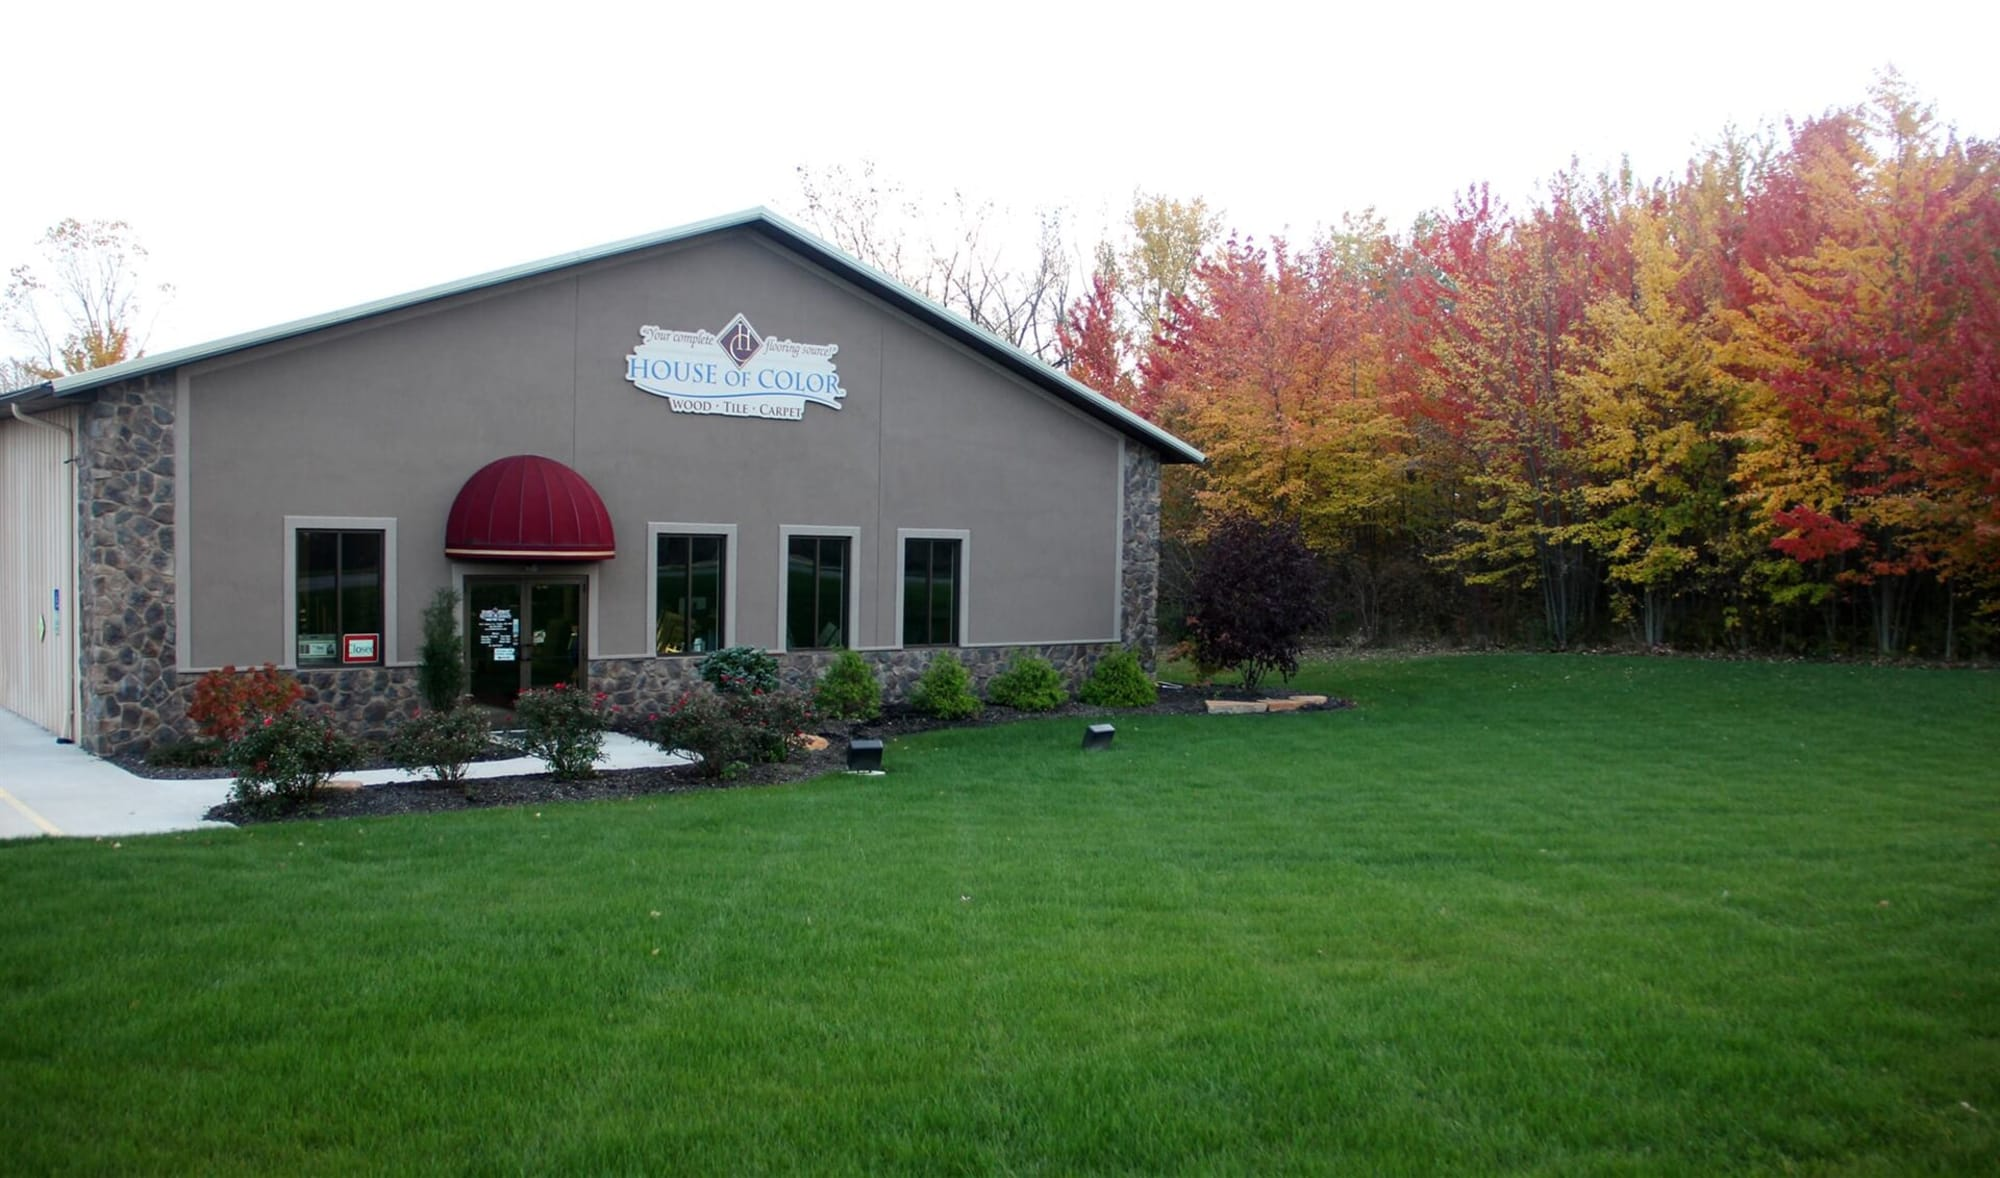 House of Color - 523 E Bigelow Ave Findlay, OH 45840